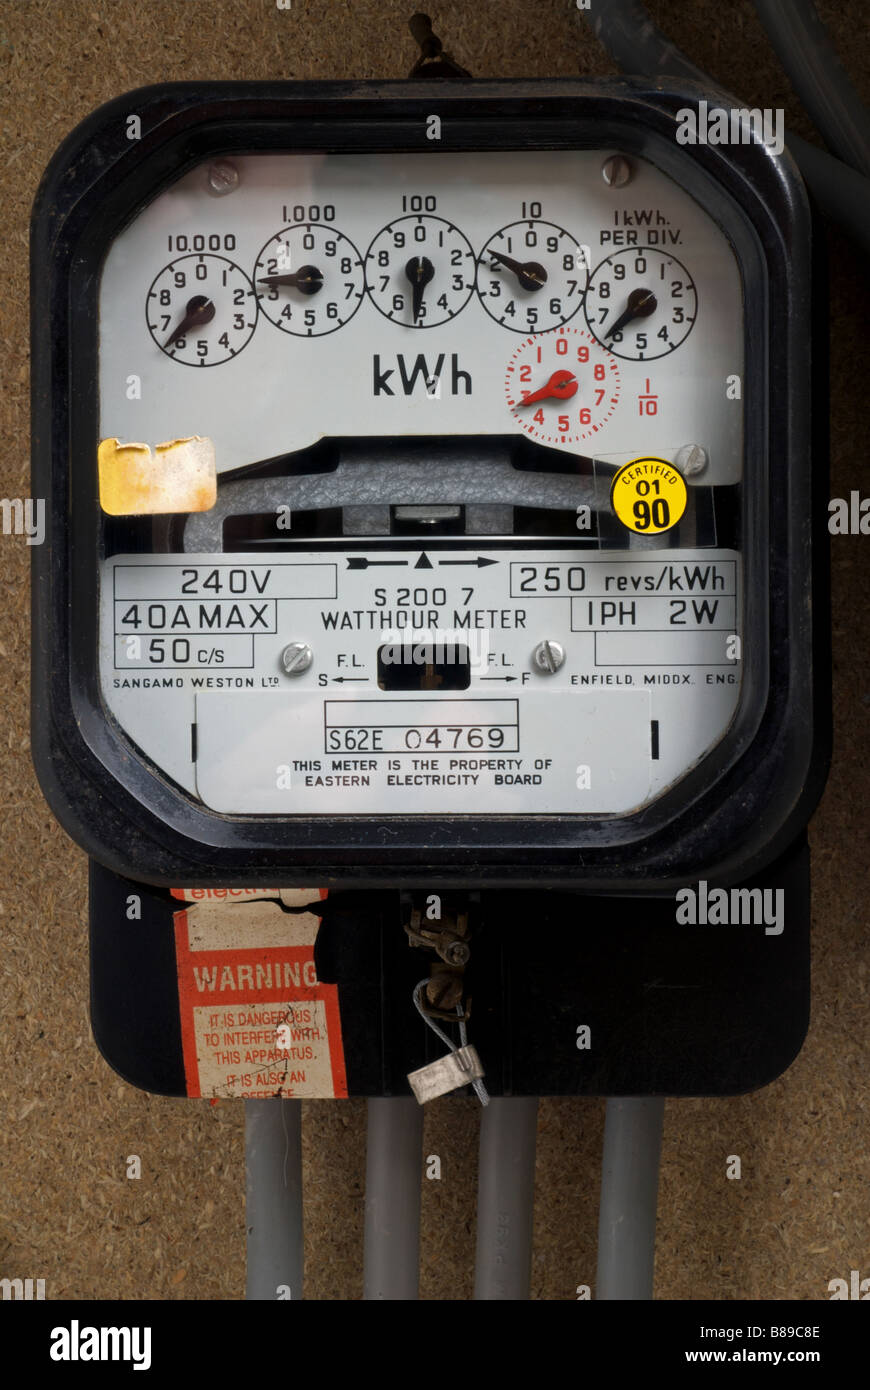 Domestic electricity meter, Bawdsey, Suffolk, UK. - Stock Image